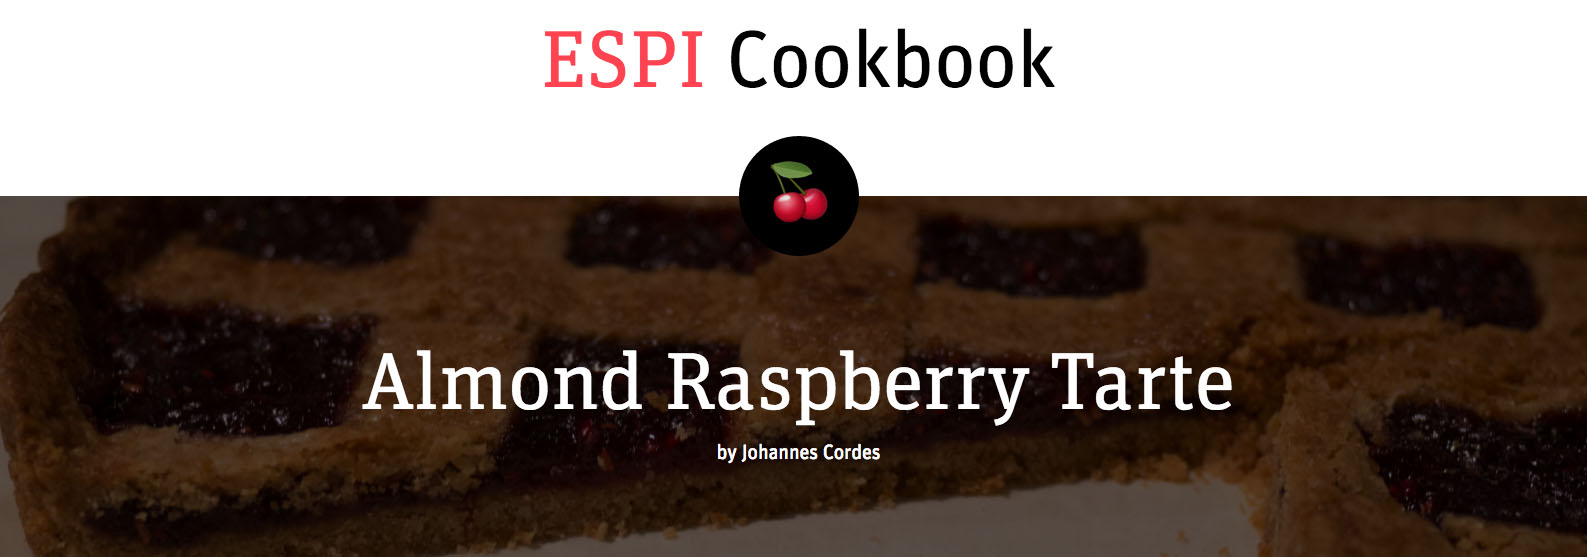 Screenshot ESPI Cookbook